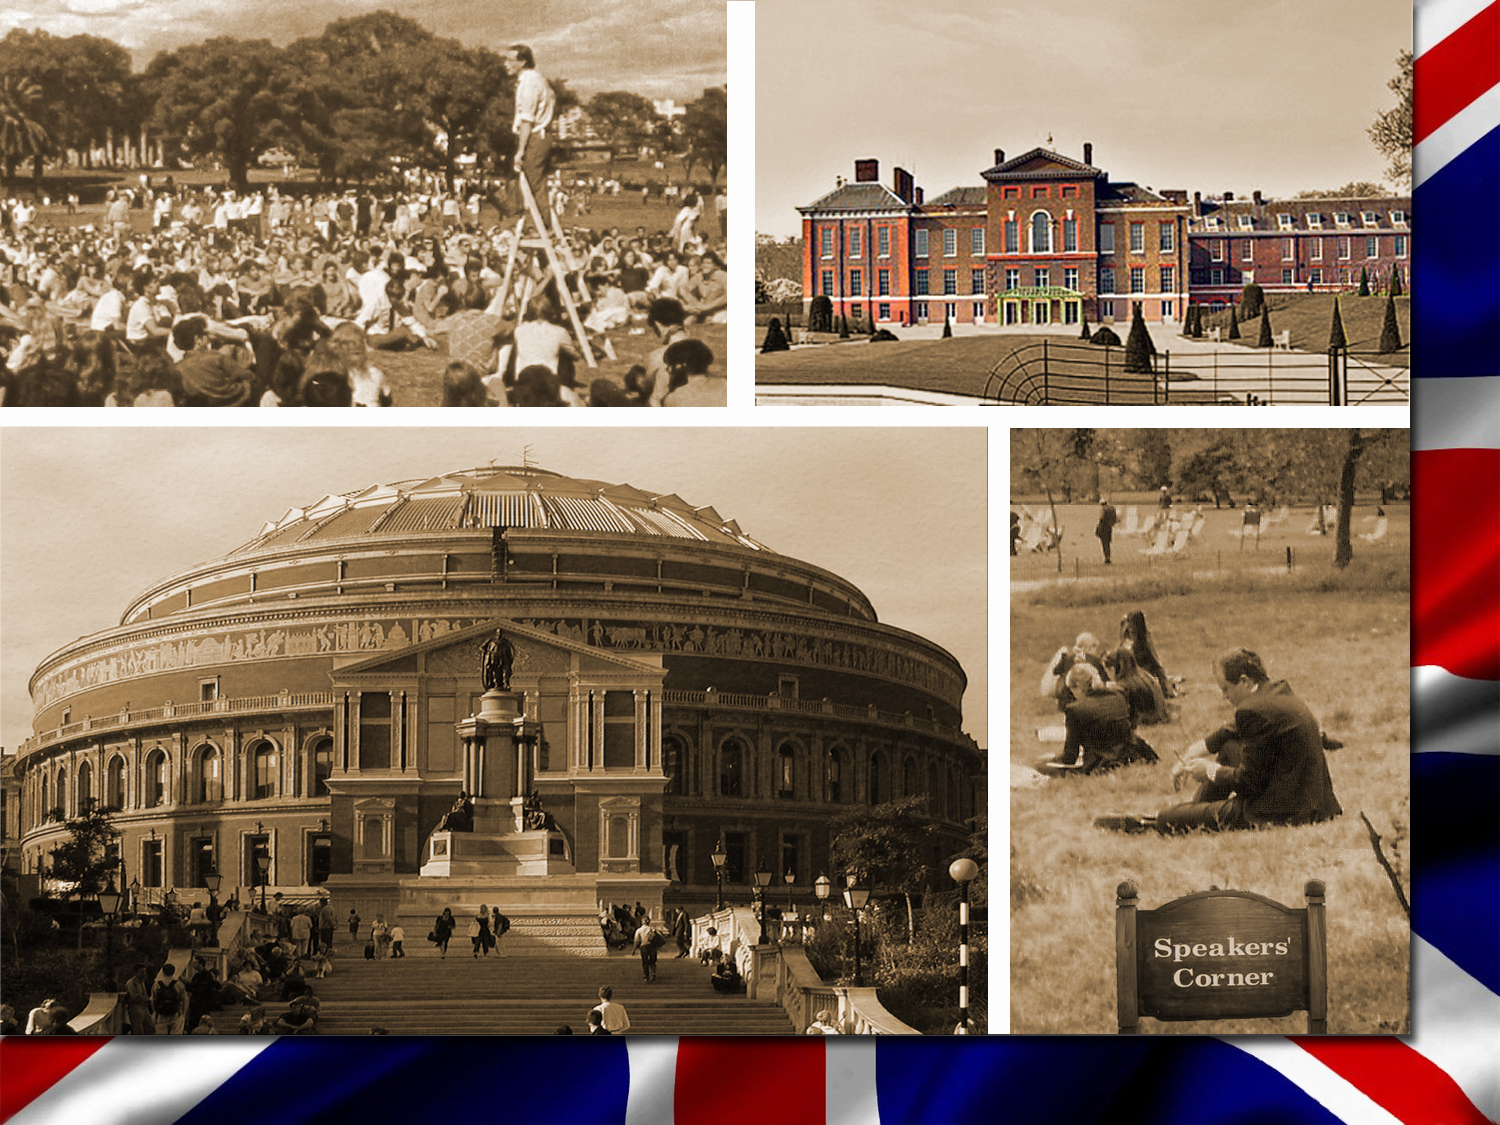 06_hyde_park_speakers_corner_kensington-palota_royal_albert_hall_london_nagy-britannia_anglia_great_britain_england_utazas_europaba.jpg